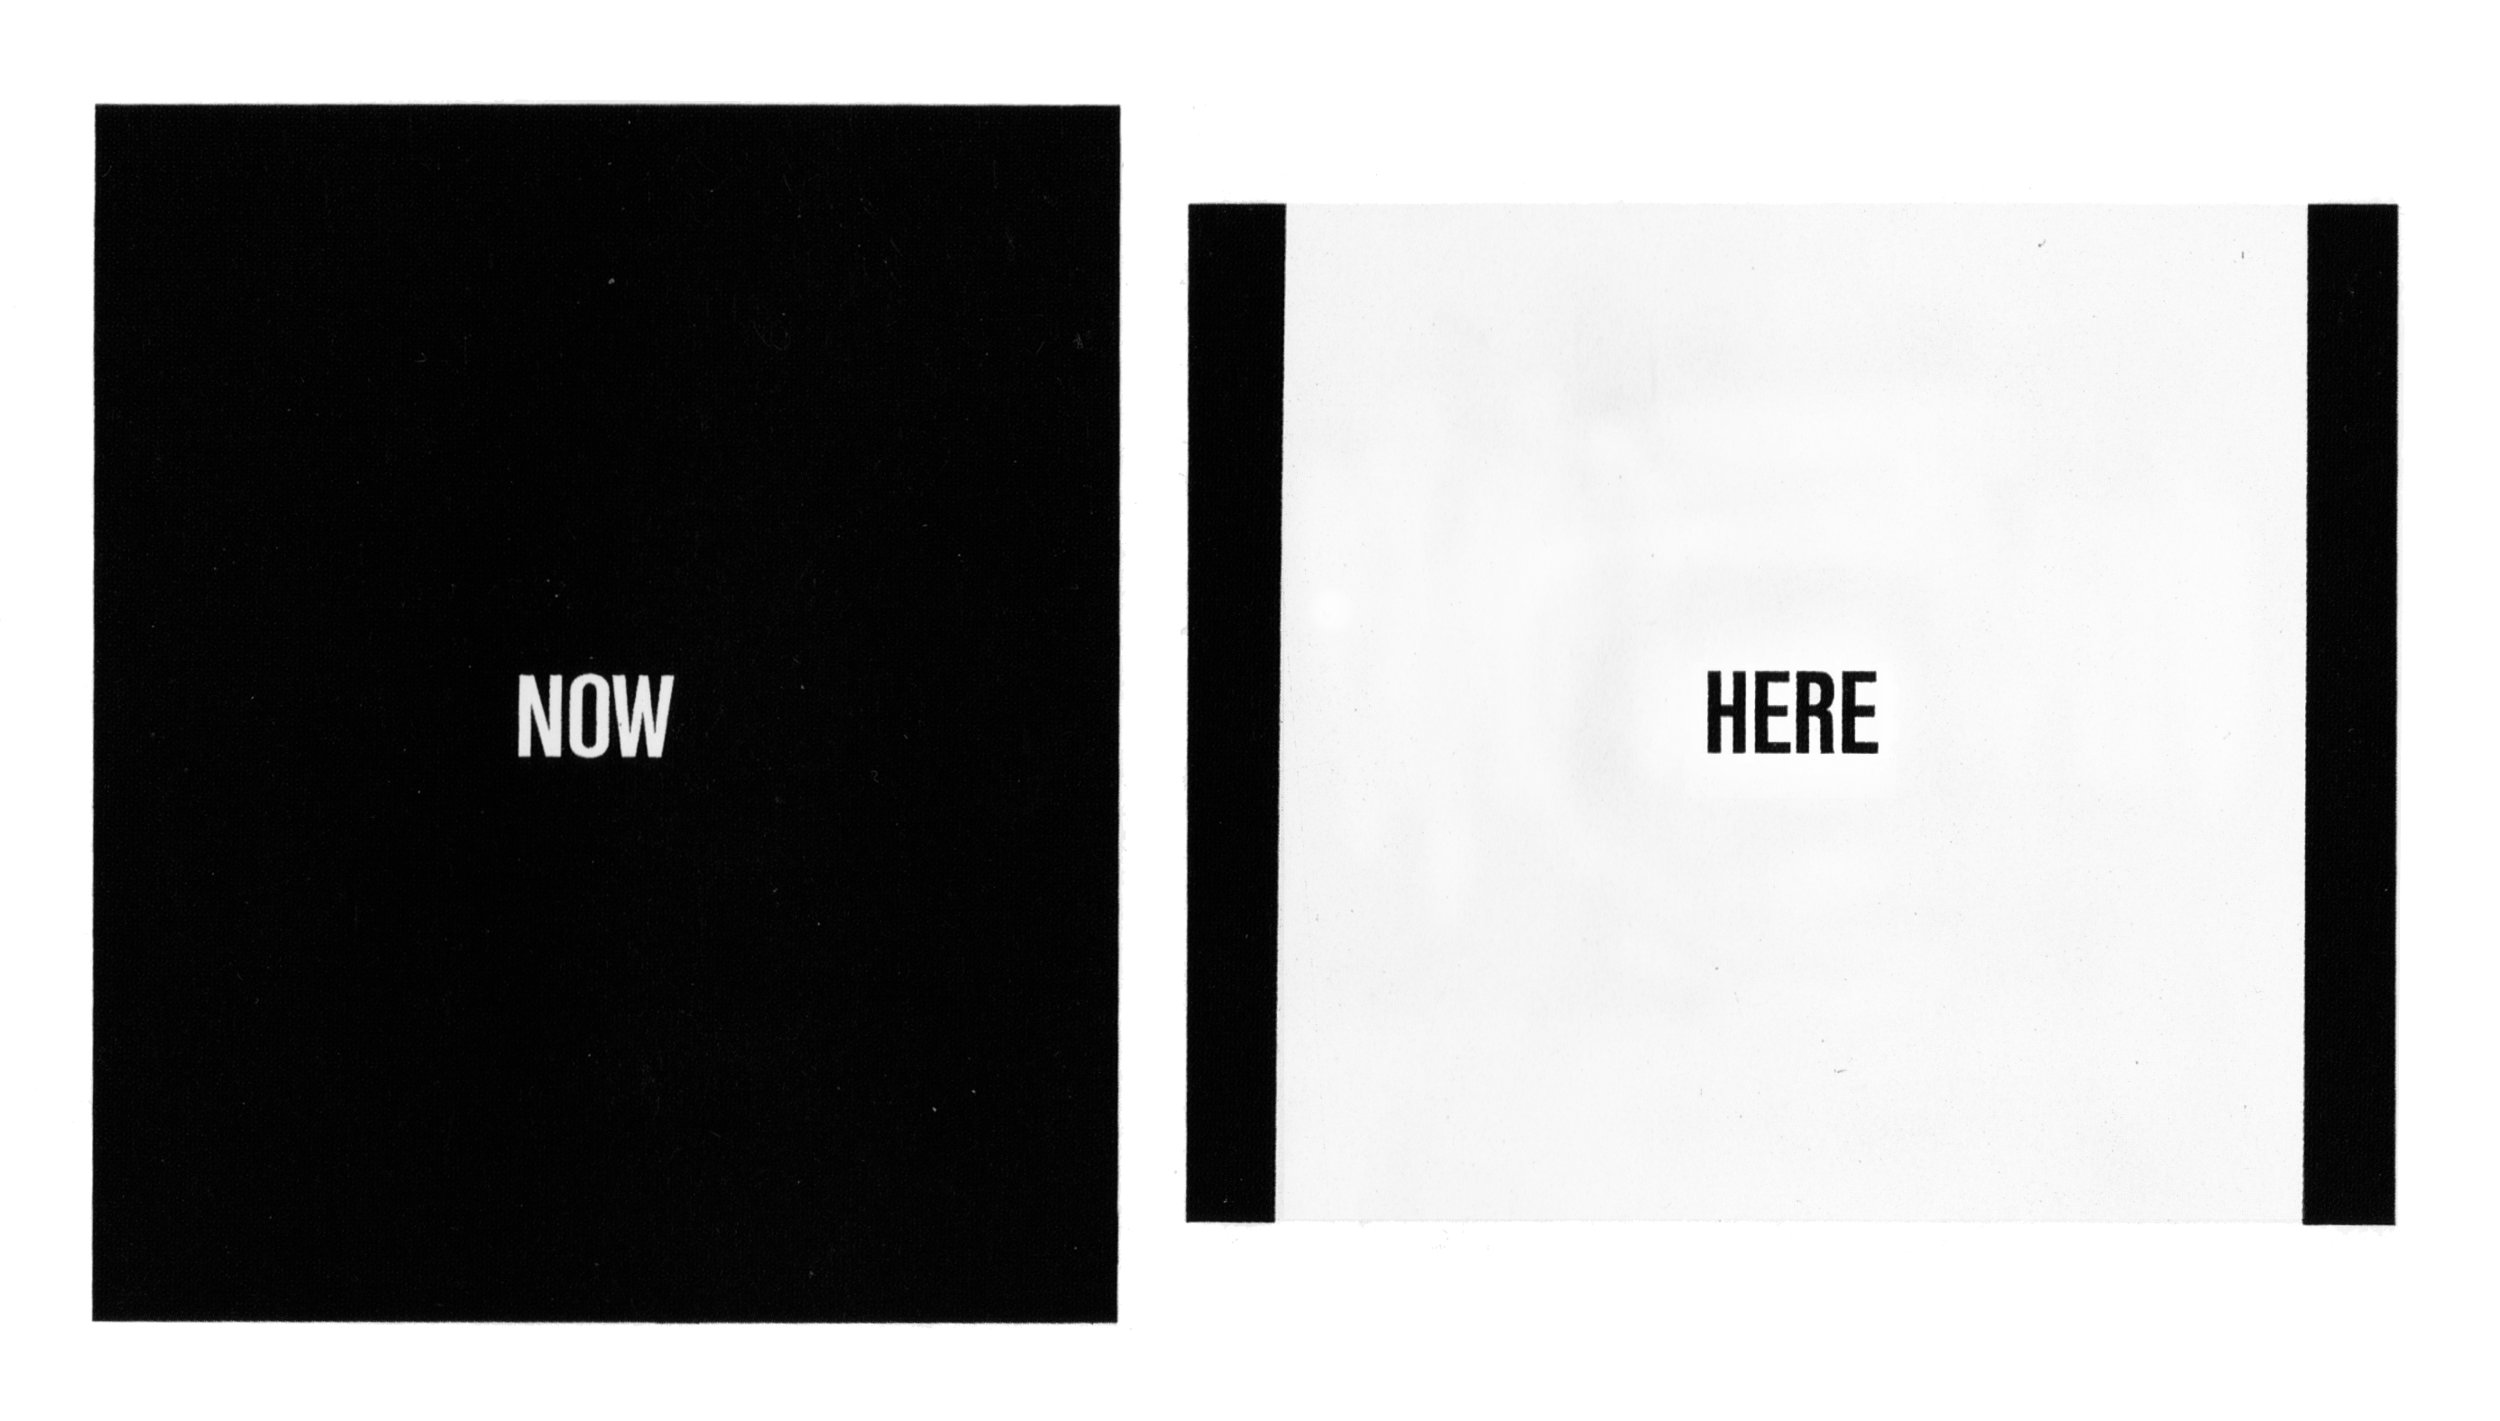 Now-Here-1989-1990